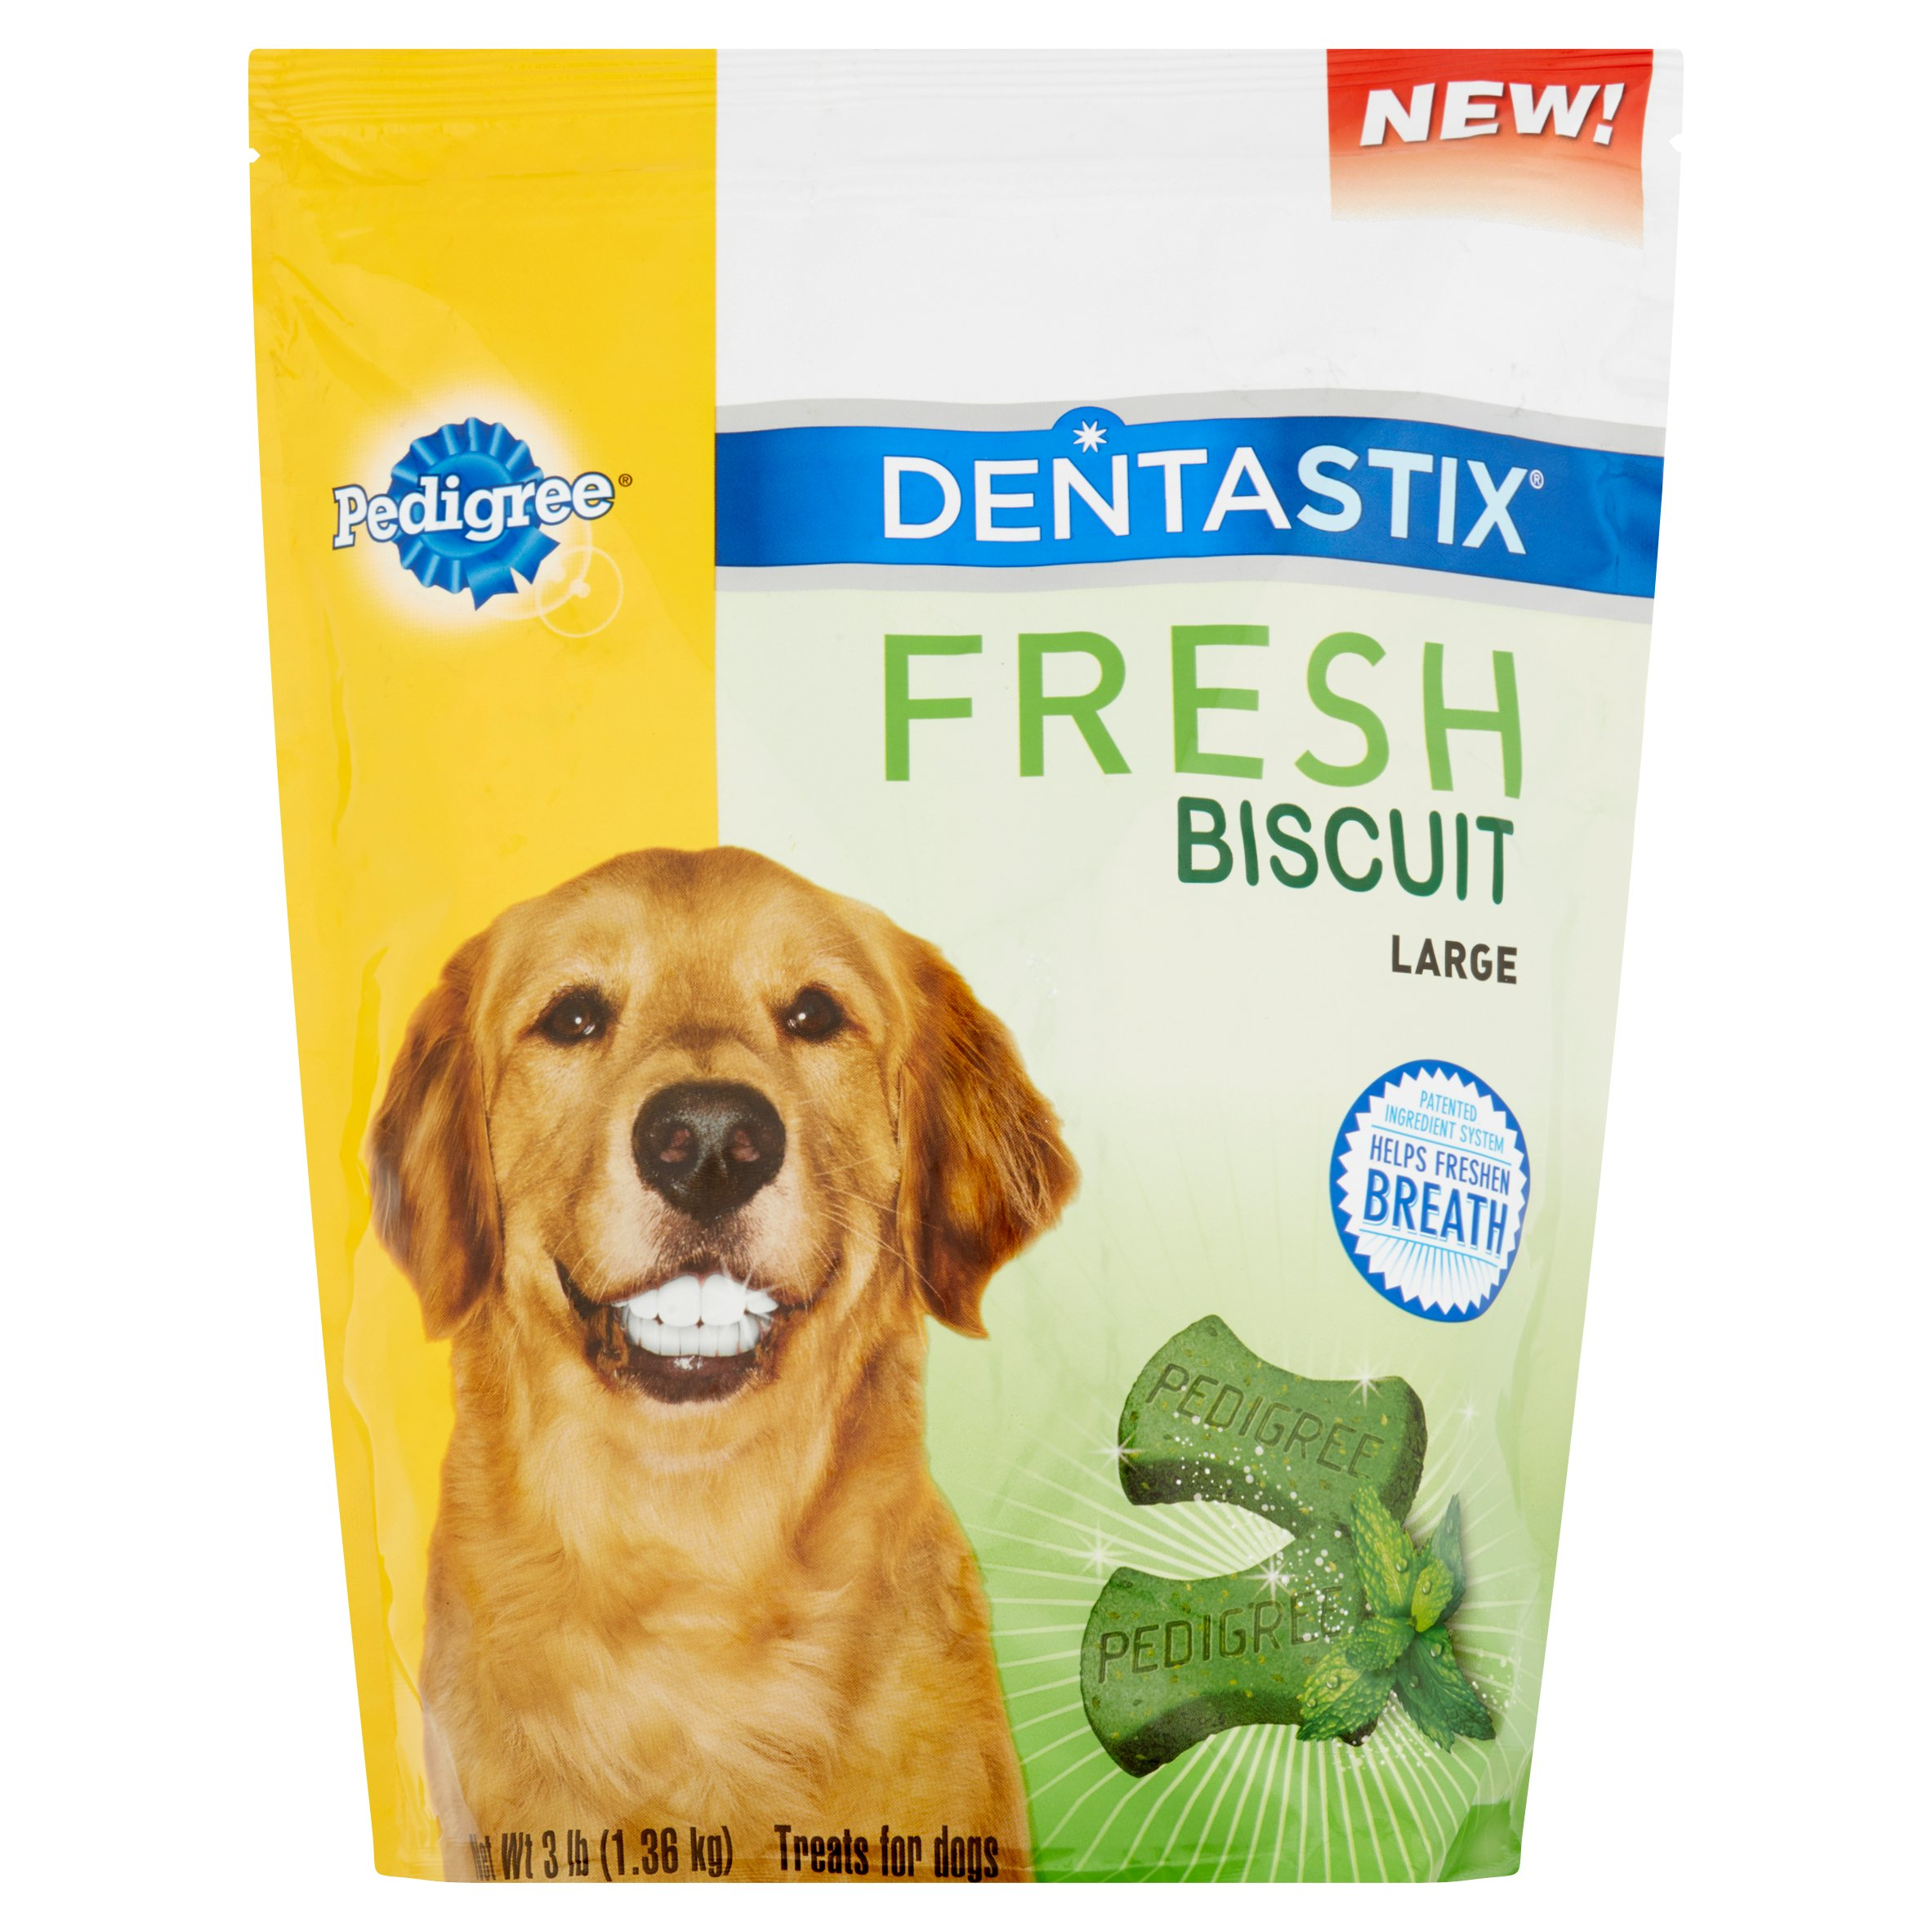 Pedigree Dentastix Fresh Biscuit Large Dog Treats, 3 Lb. by Mars Petcare Us